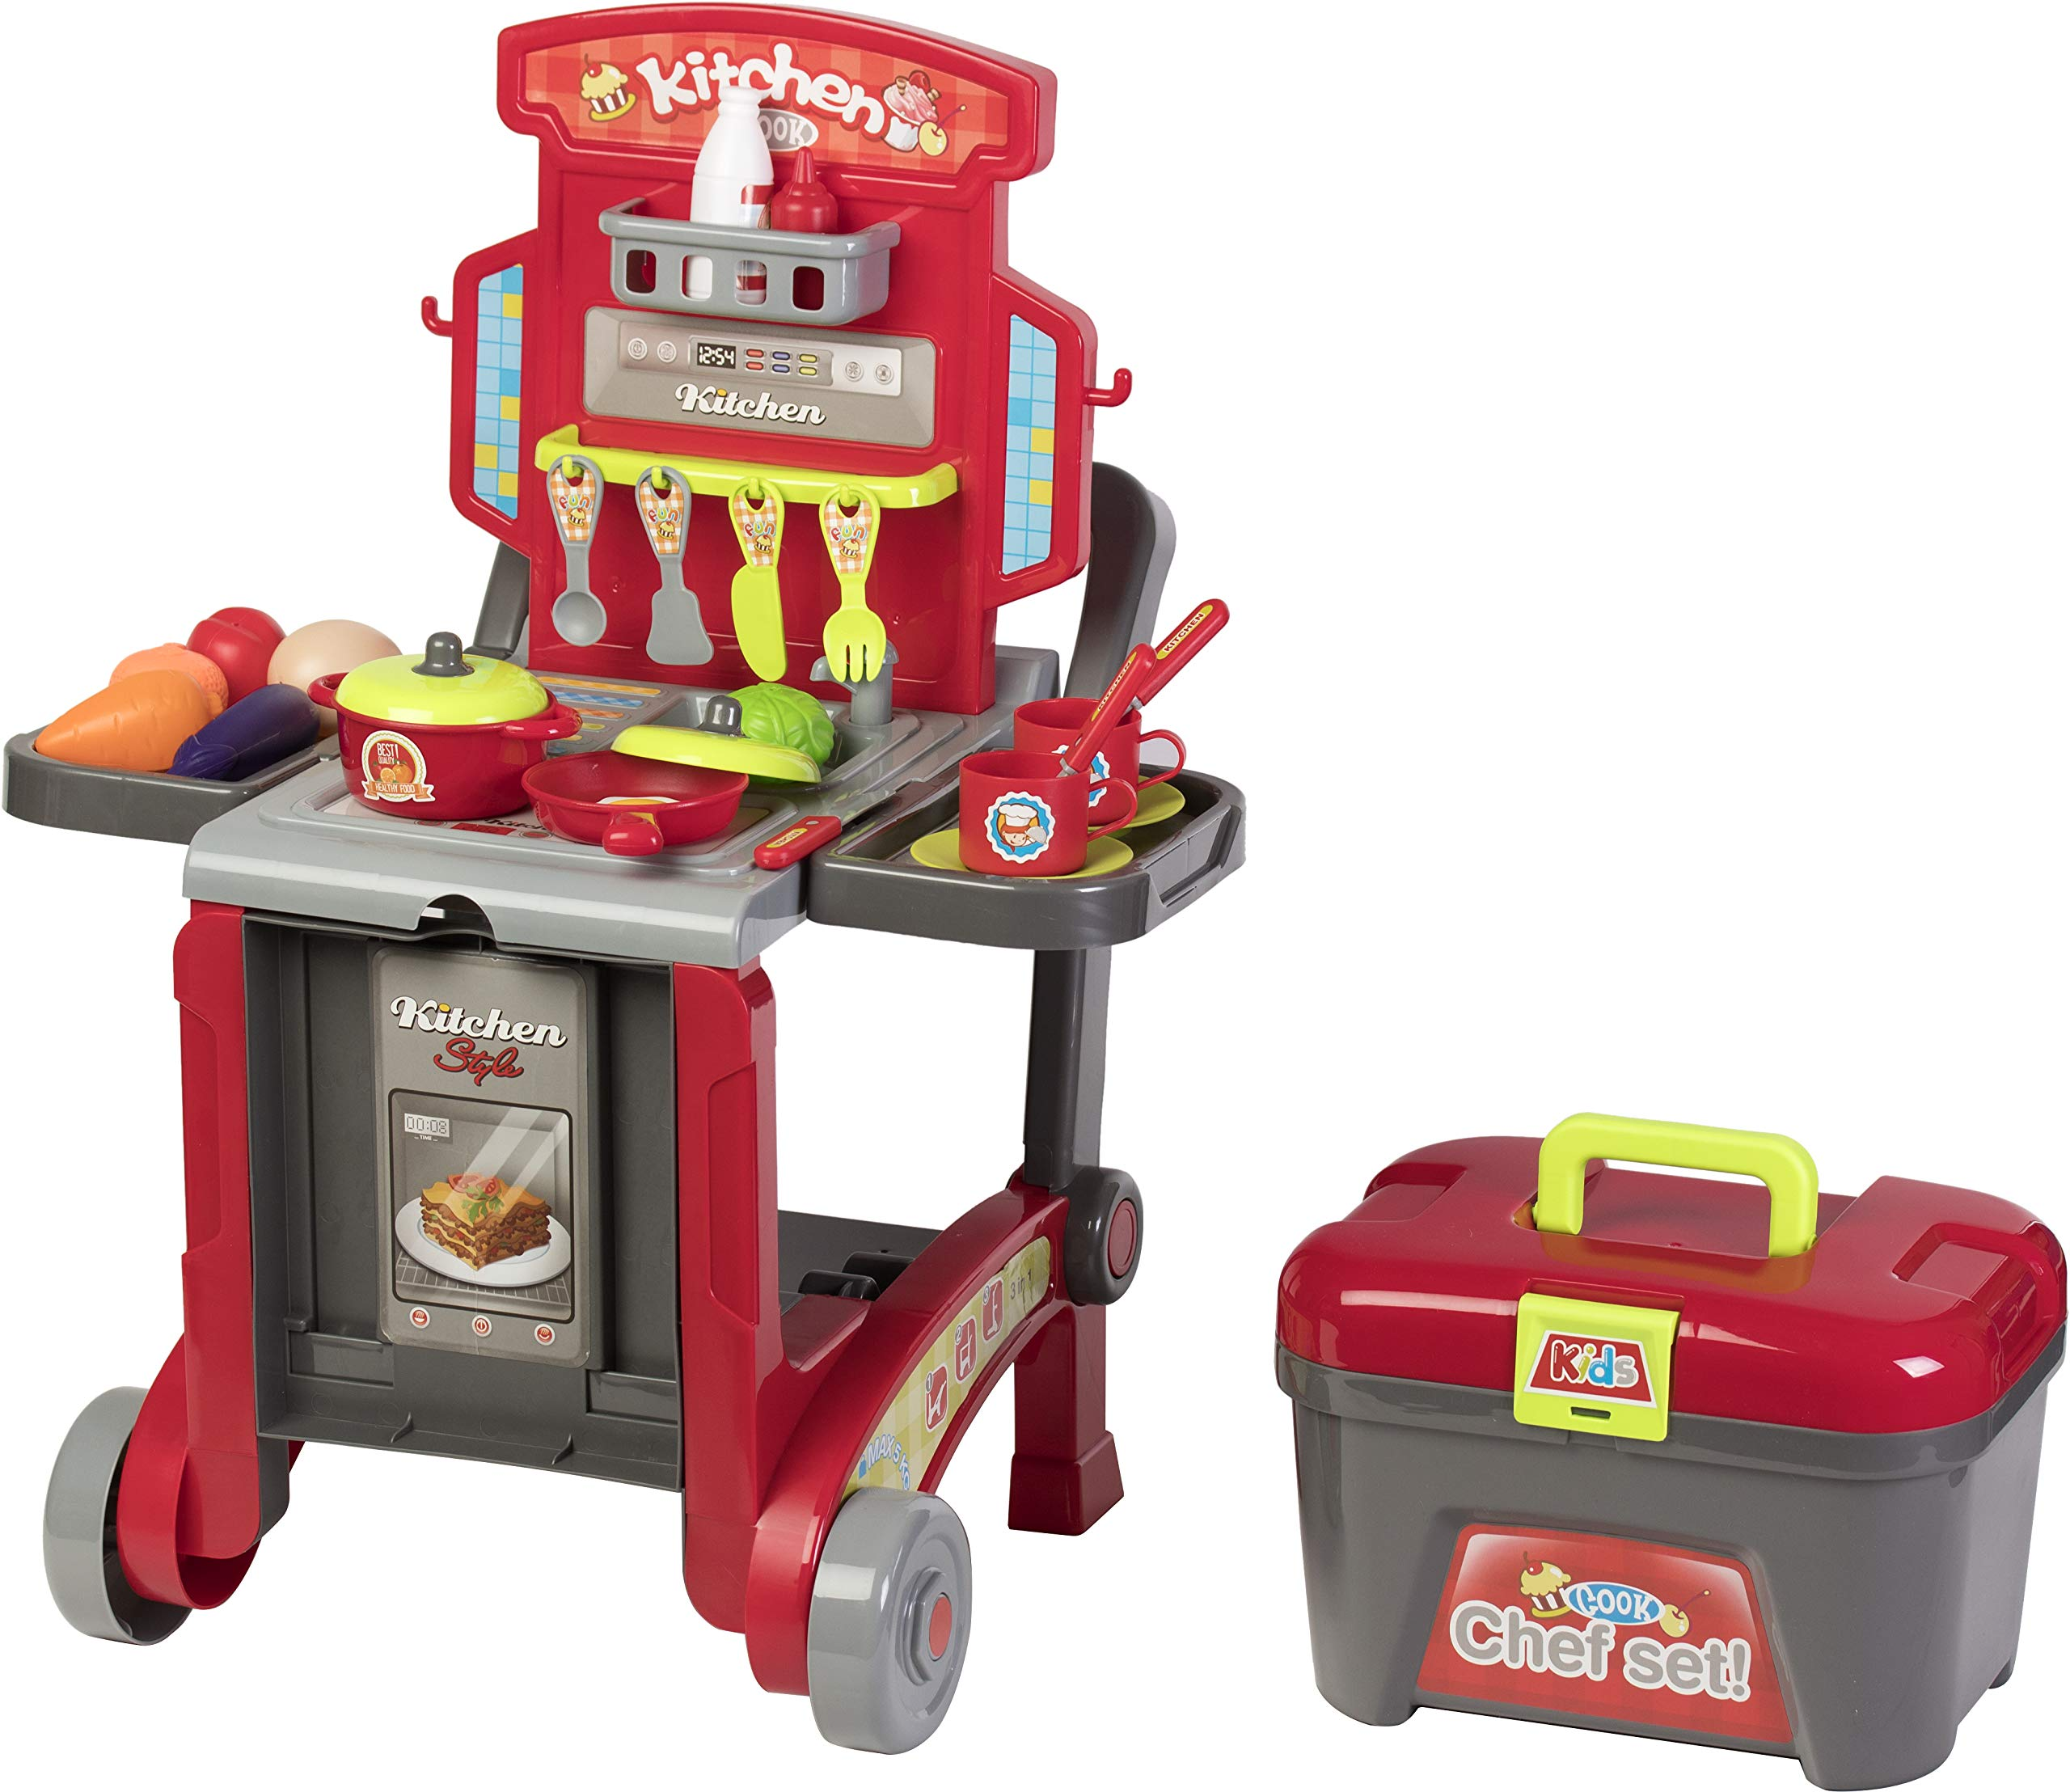 Kitchen Cook Grill Boys Playset Oven Stove, Vegetables, Pots & Pans, Cups, Utensils w/ Compact Carry Case by Kitchen Cook (Image #3)